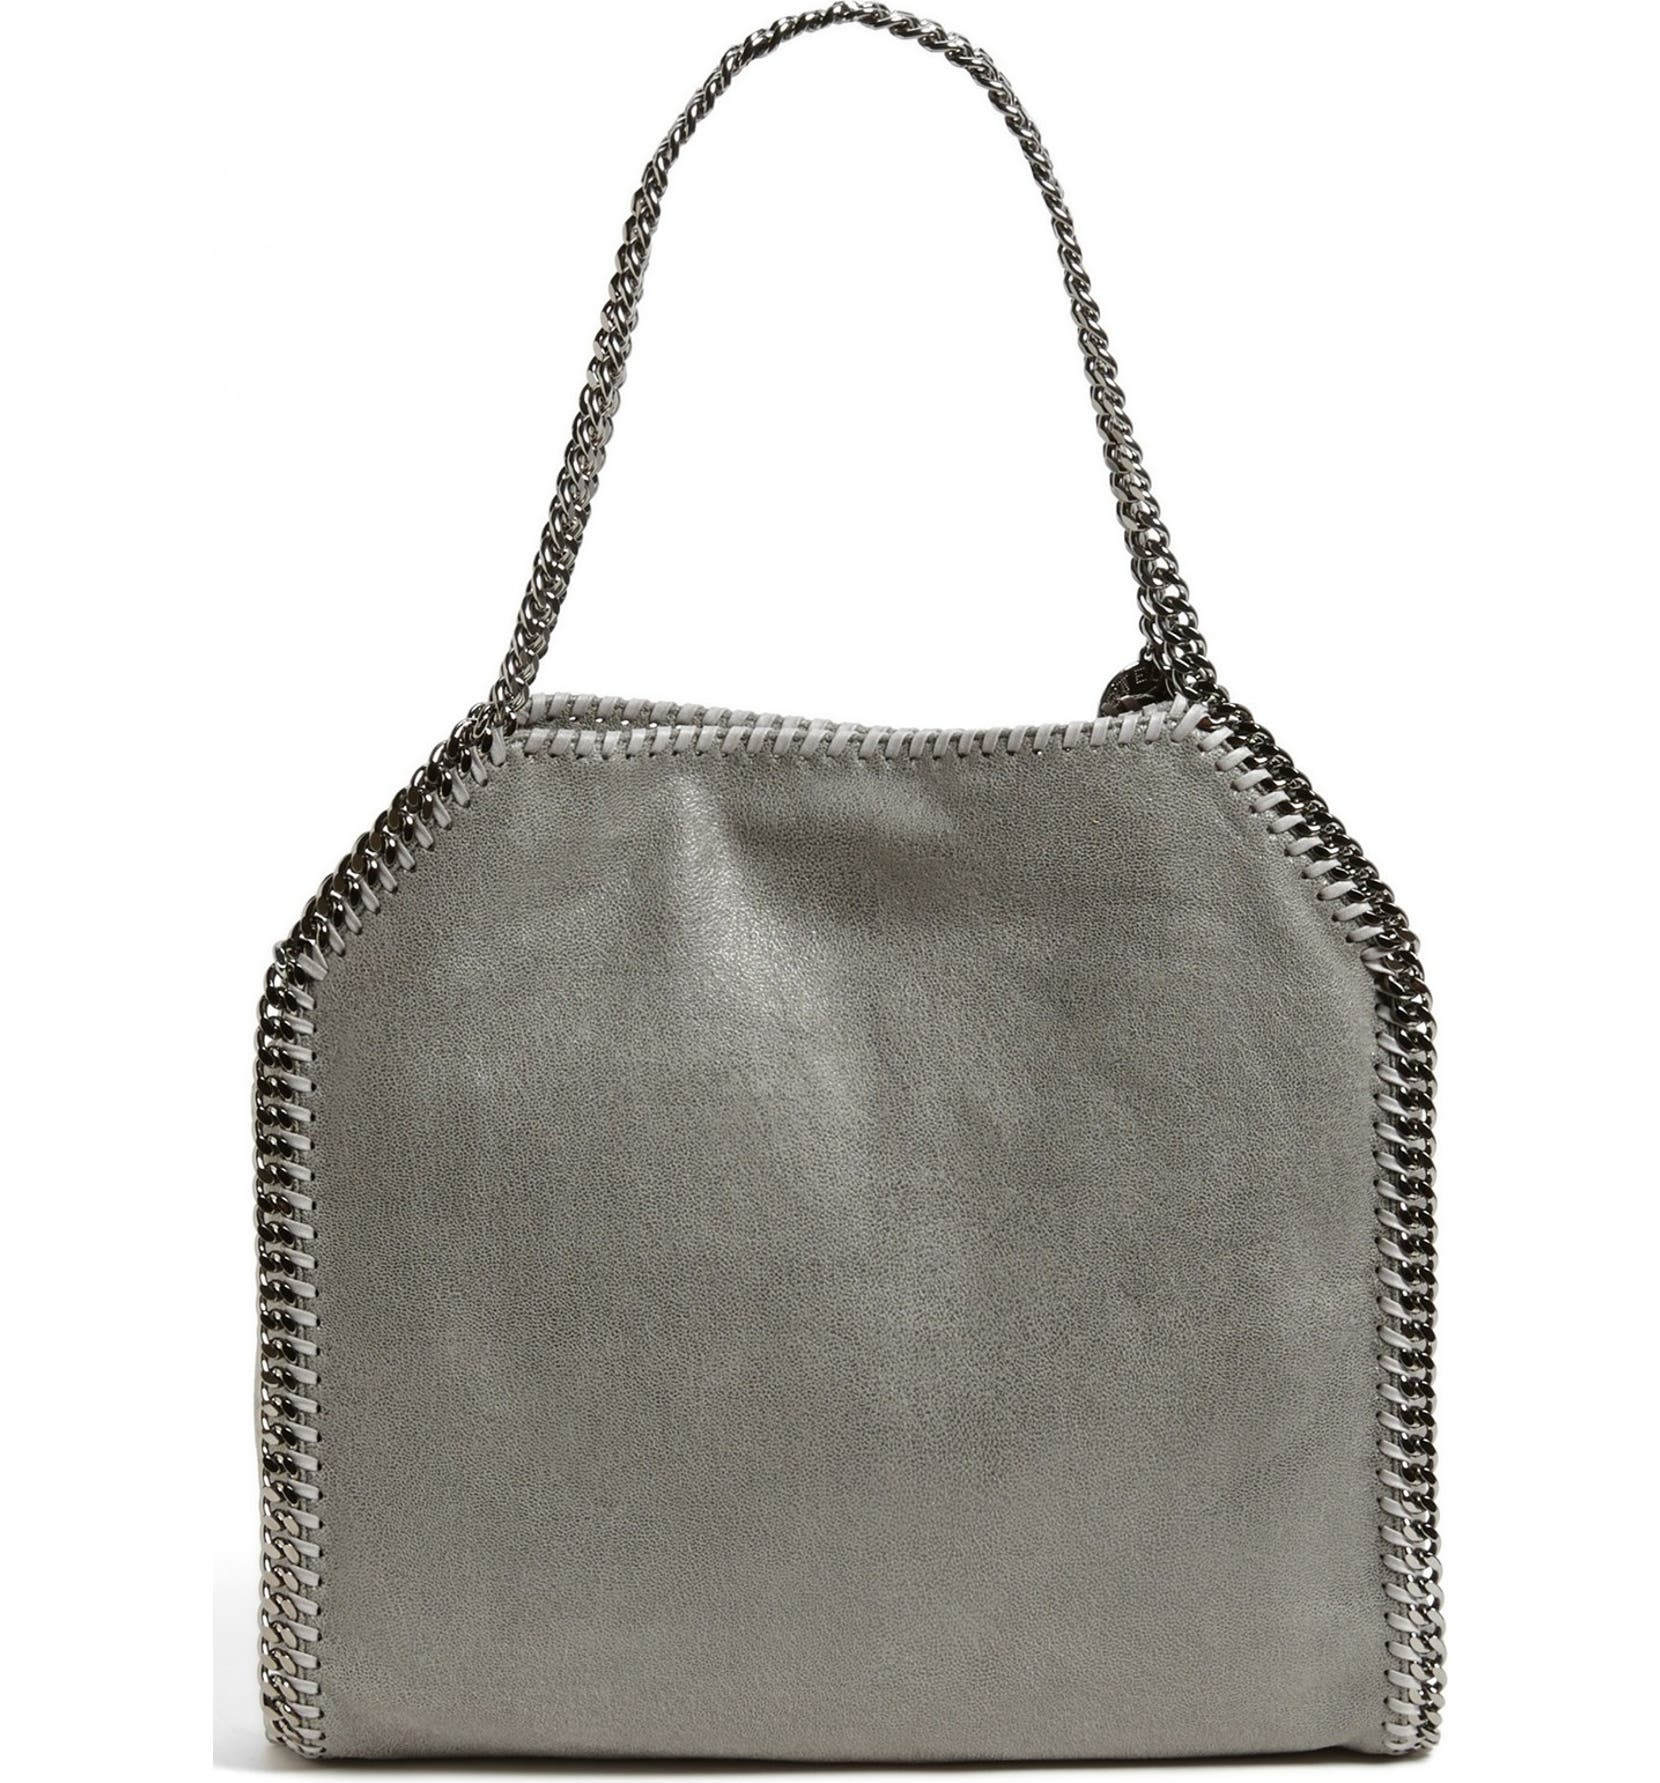 a7df7c1240 Stella McCartney  Small Falabella - Shaggy Deer  Faux Leather Tote ...